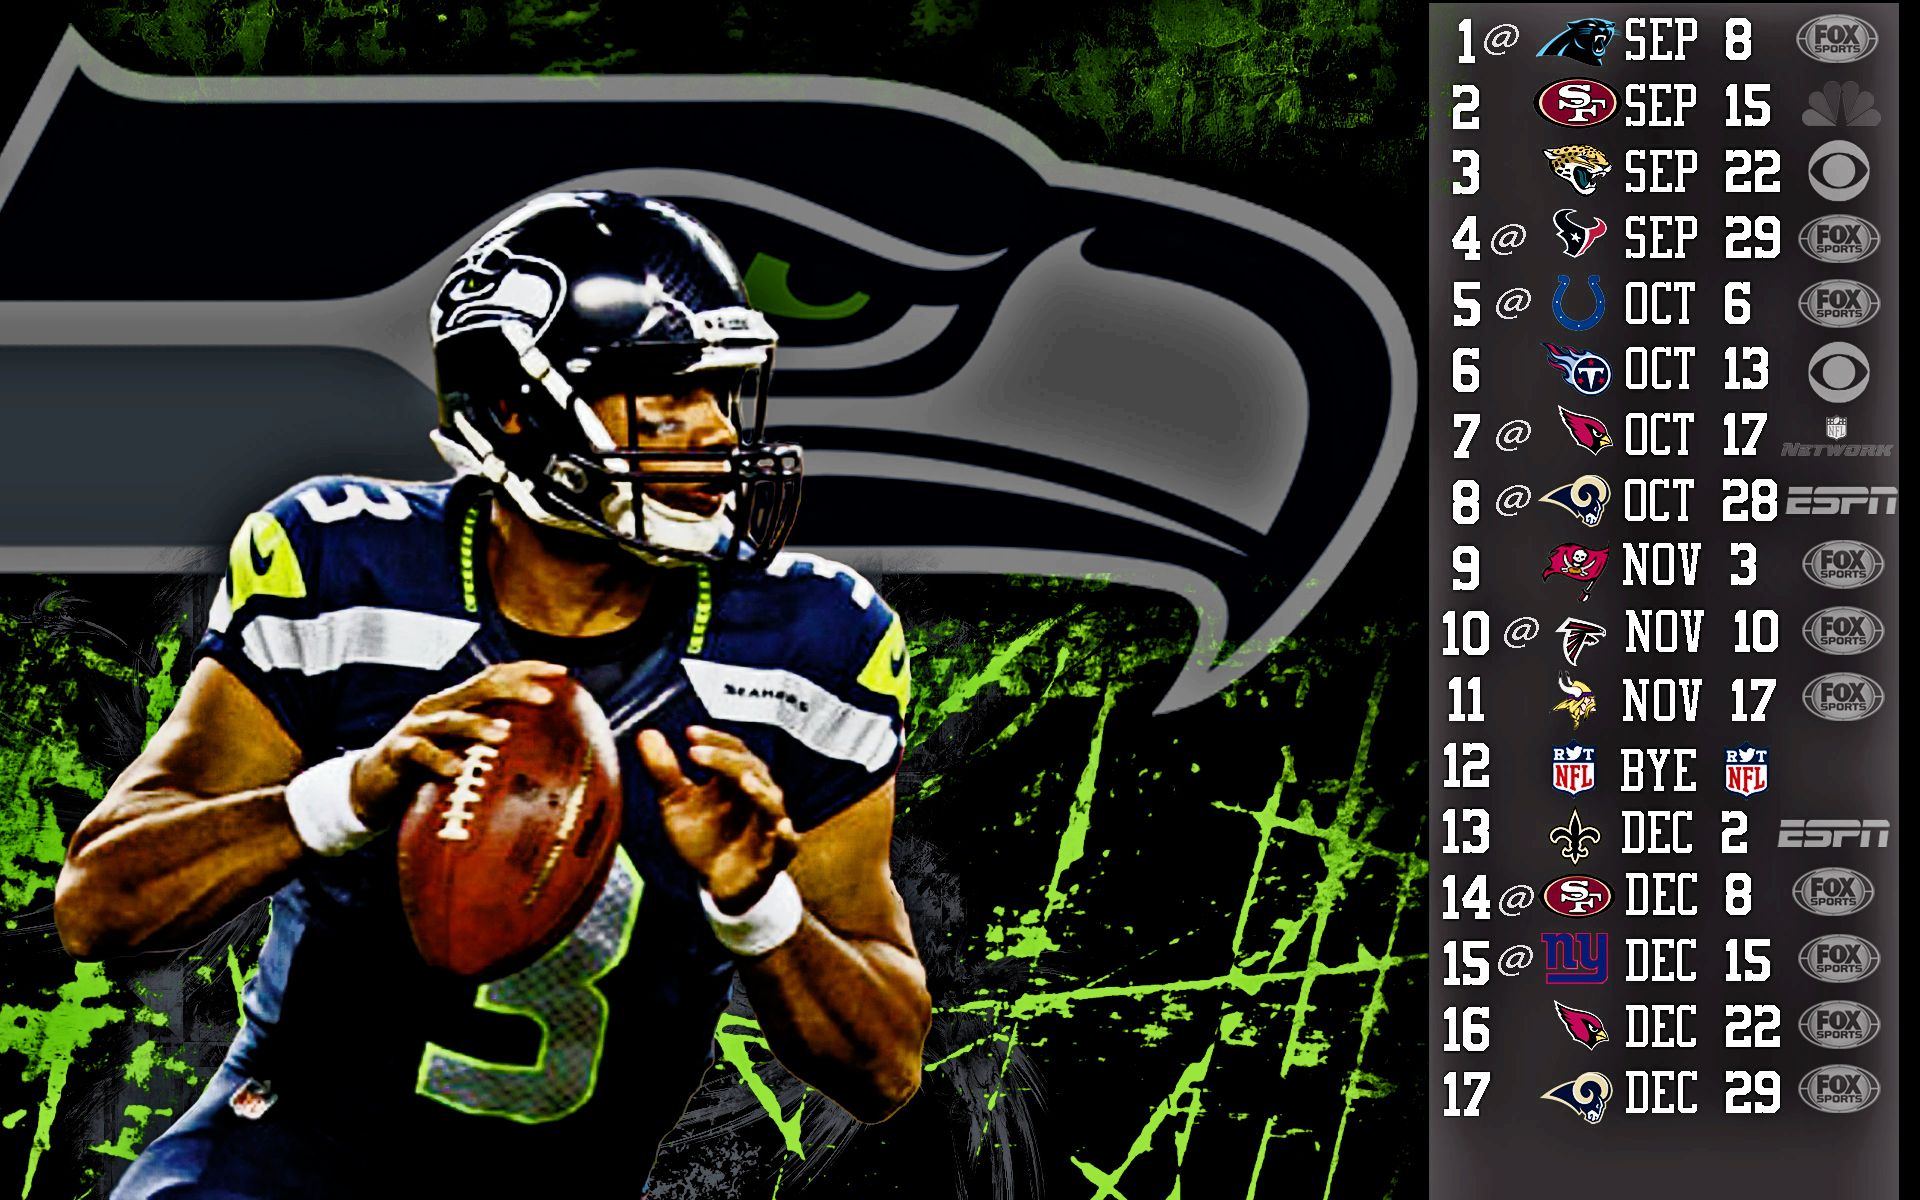 Seattle Seahawks Schedule Wallpaper